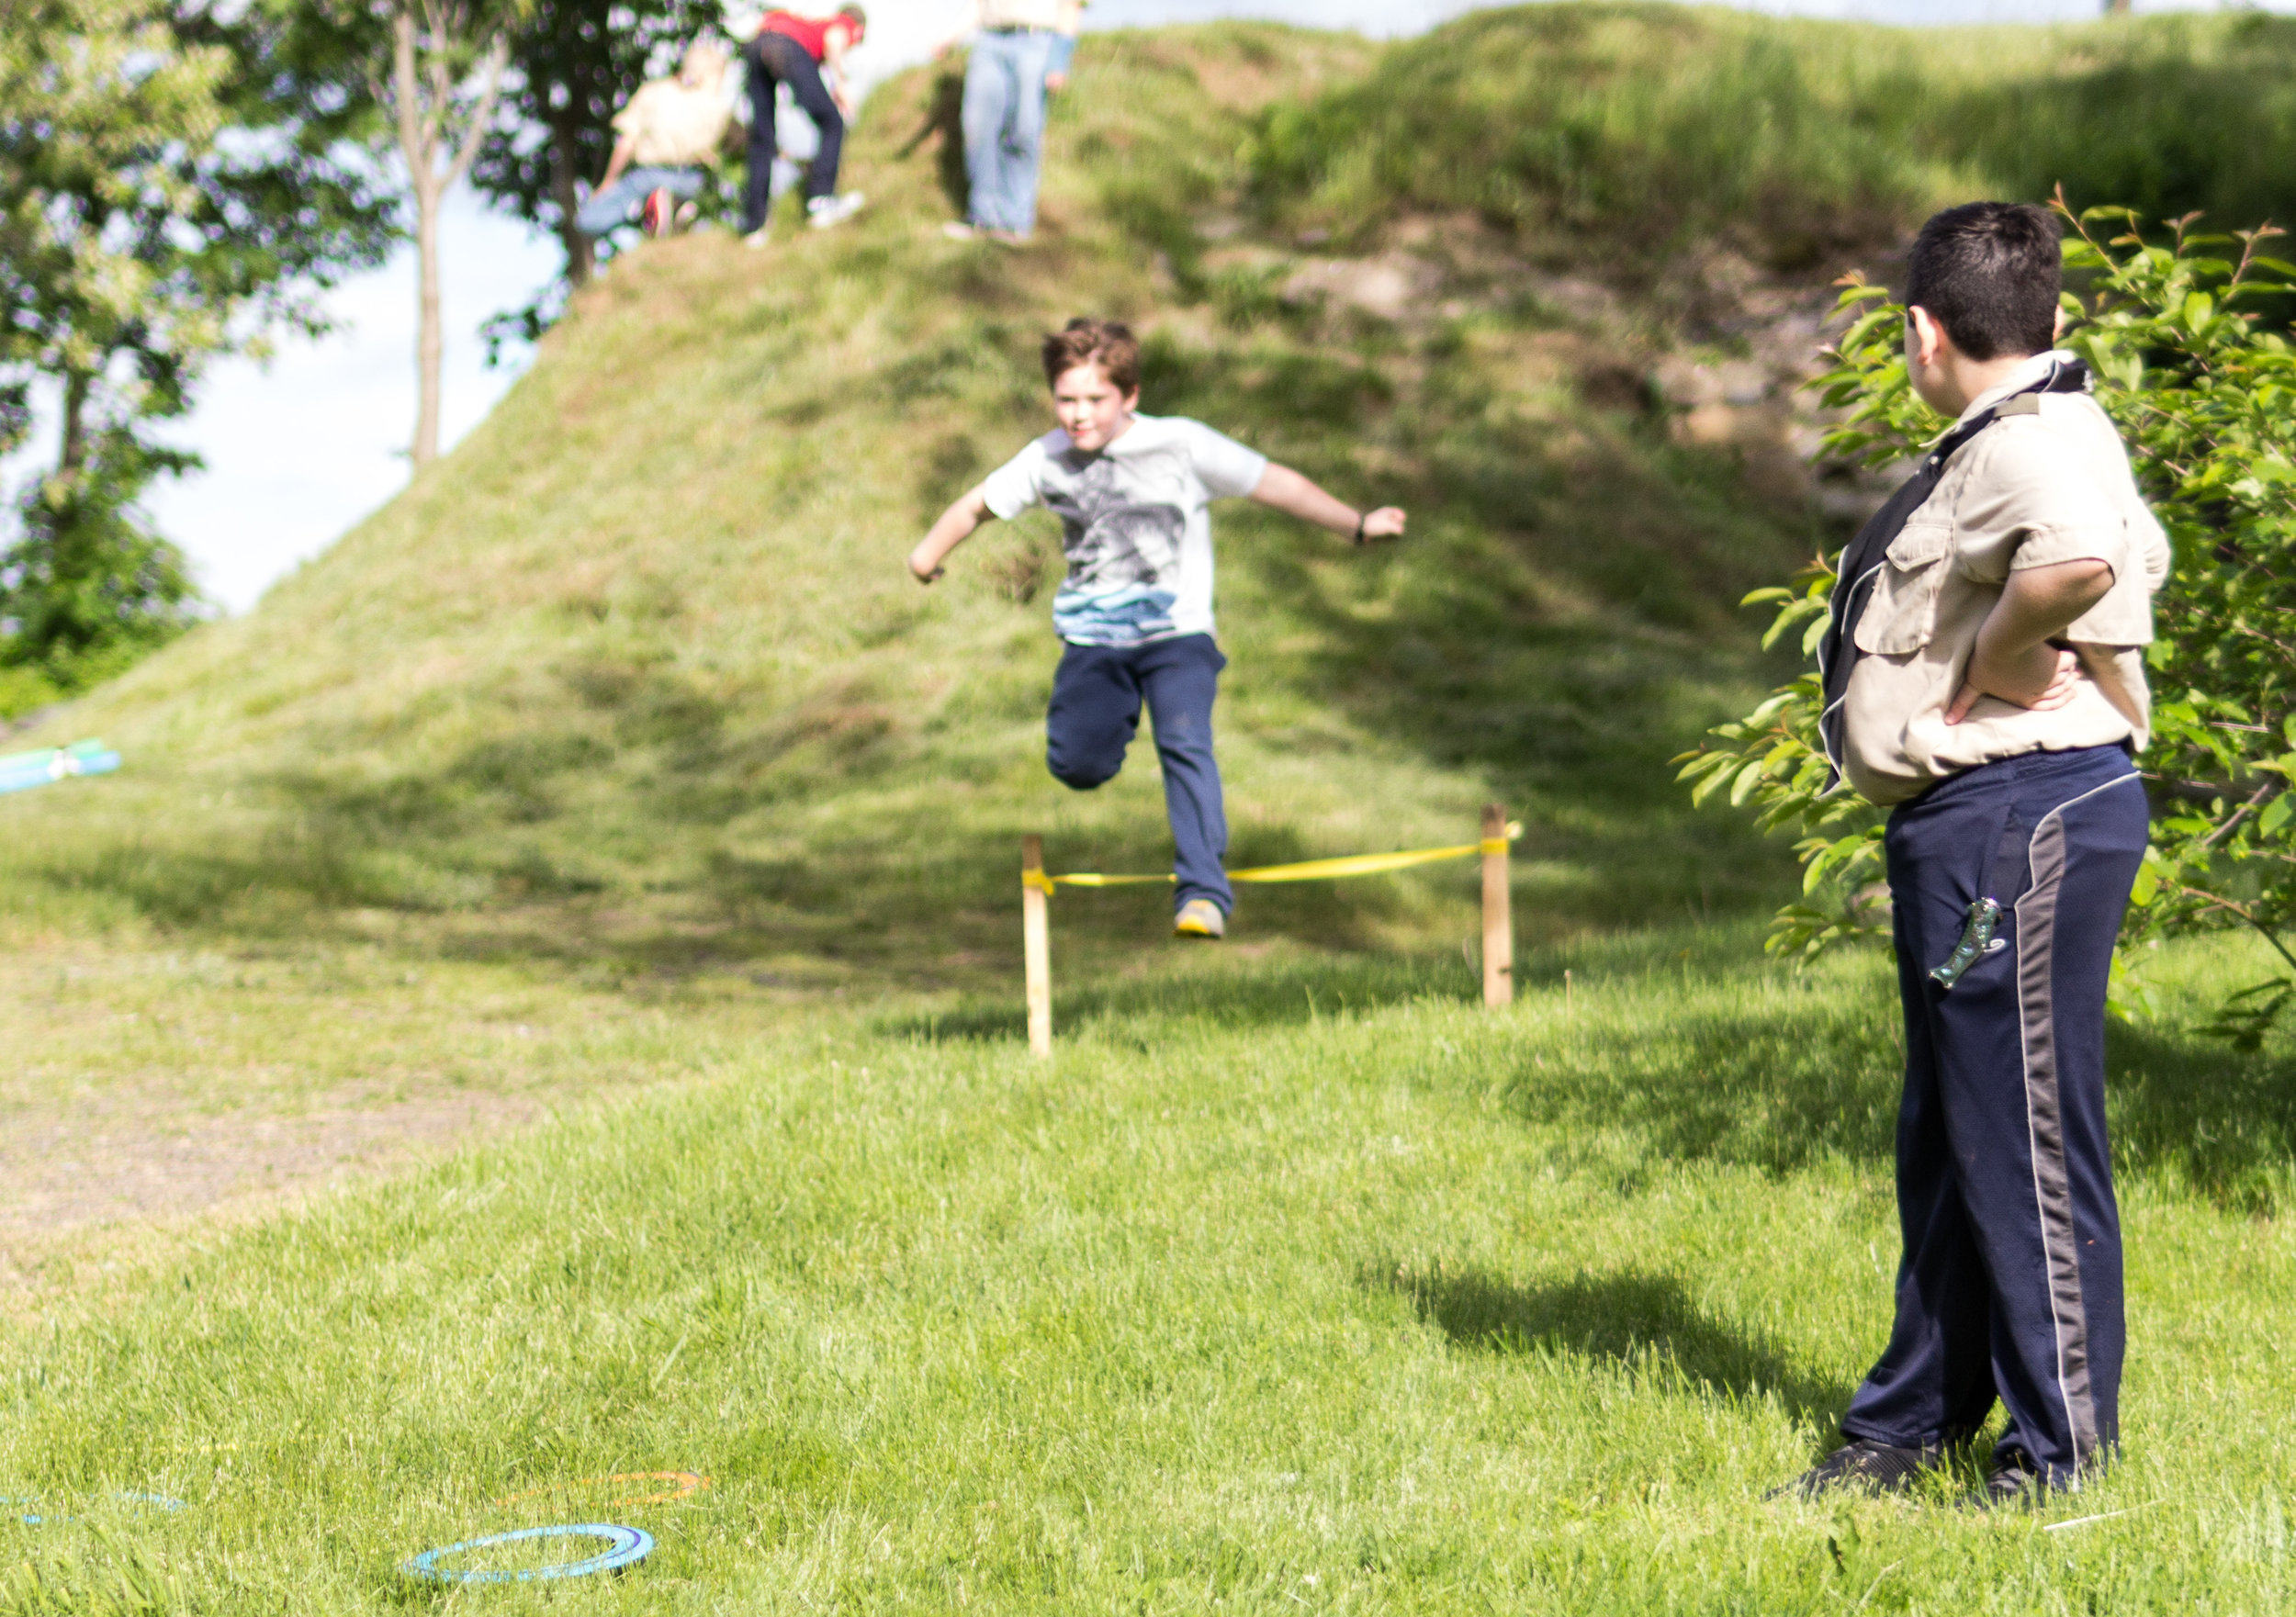 Cub Scouts Obstacle Course_15.jpg